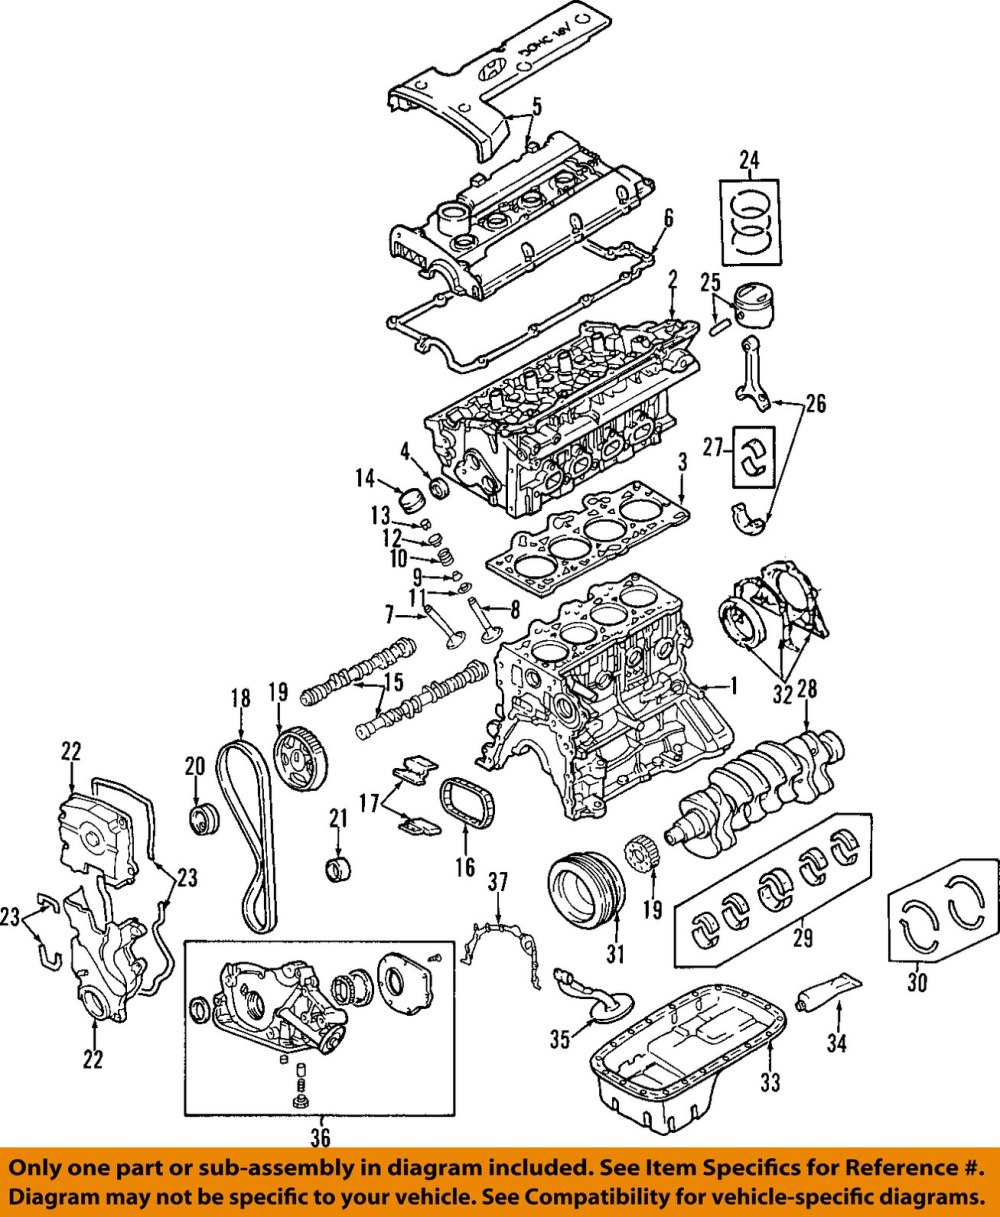 medium resolution of 2010 hyundai sonata engine diagram wiring diagrams bib 2001 hyundai sonata engine diagram